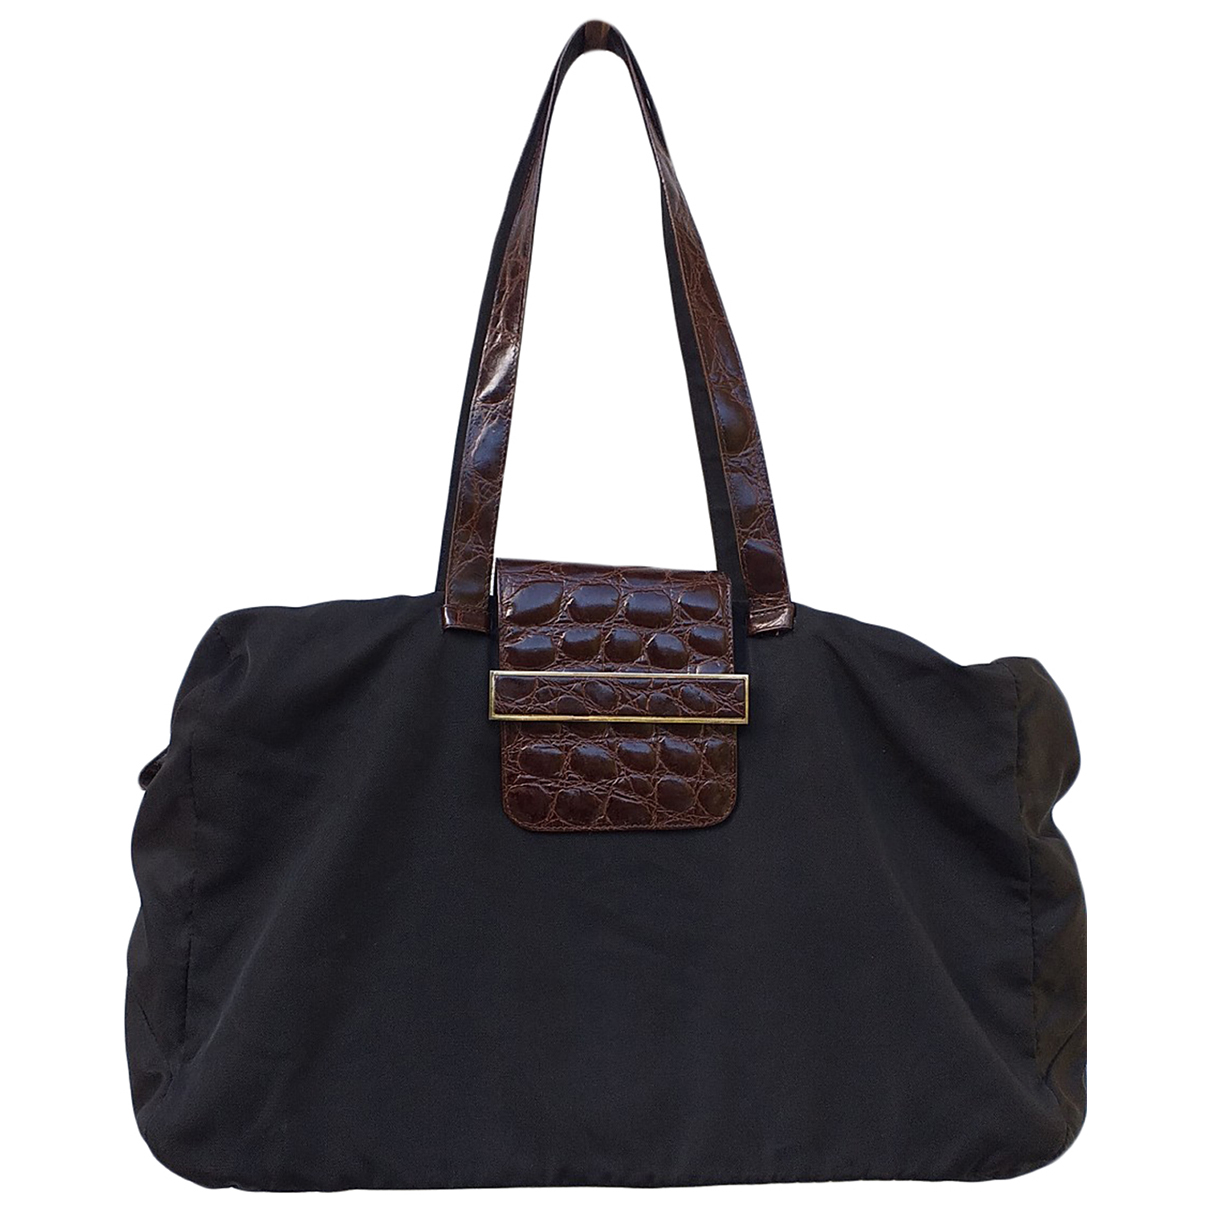 Maliparmi N Black Crocodile handbag for Women N